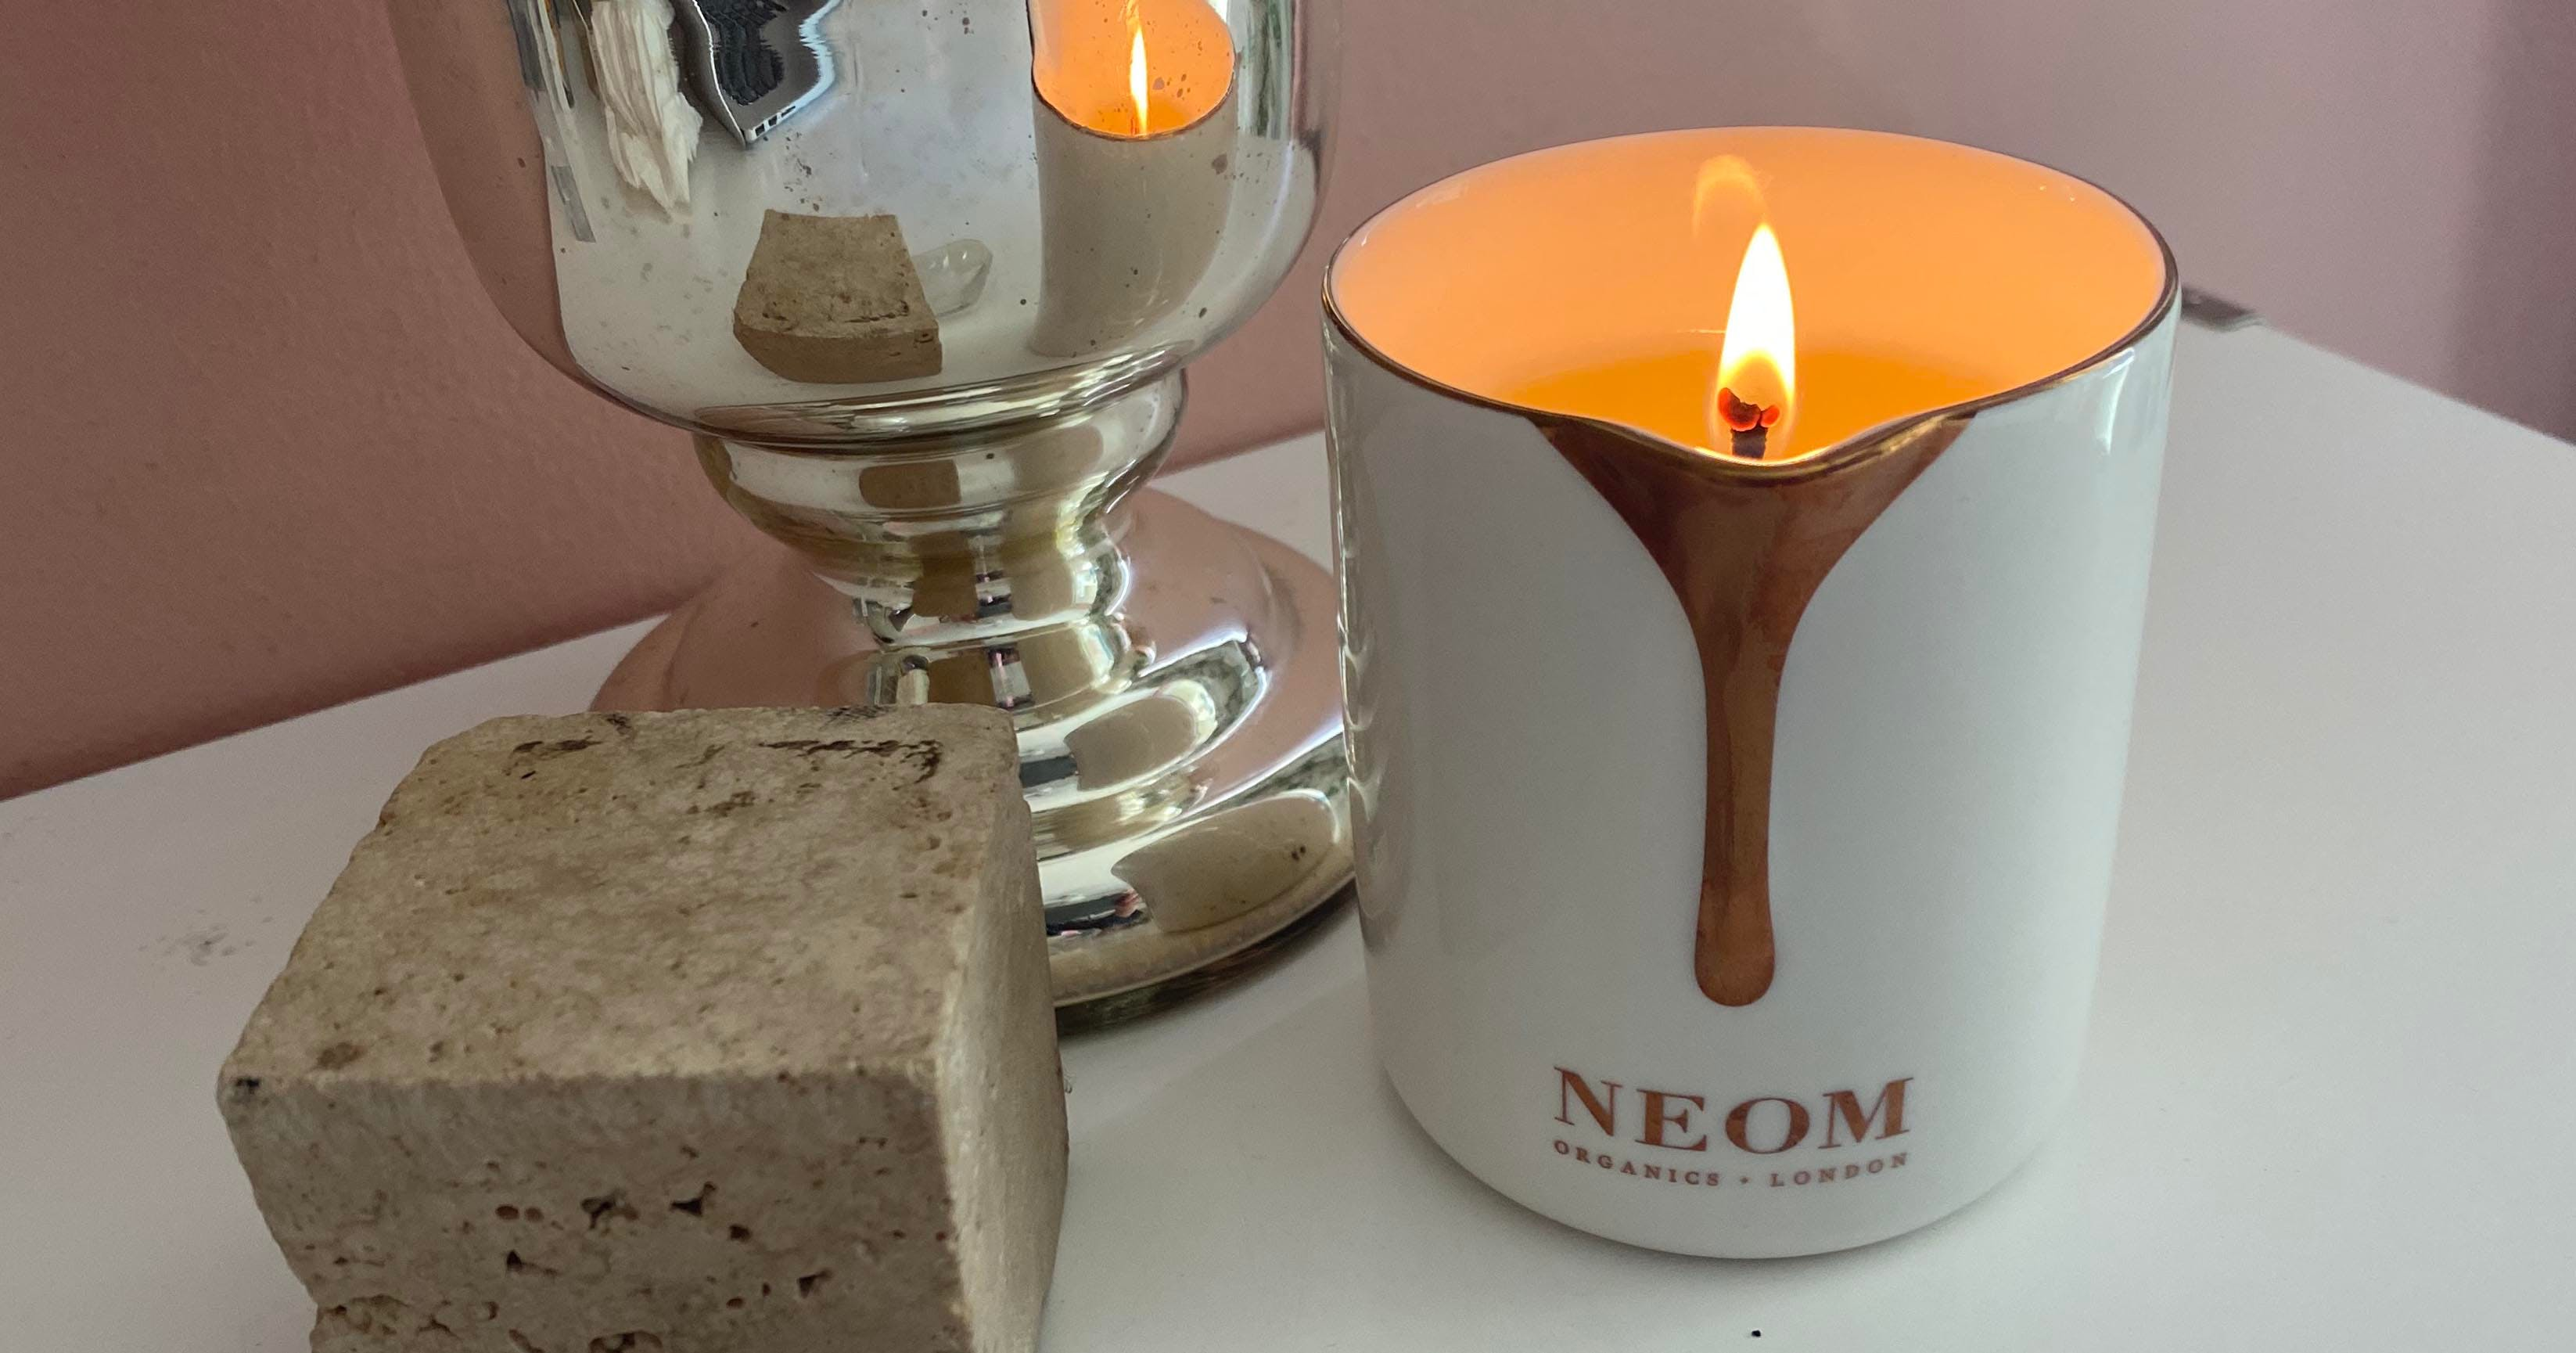 This Neom Organics Candle Pours Warm Scented Oil and My Winter-Chapped Skin Is So Here for It